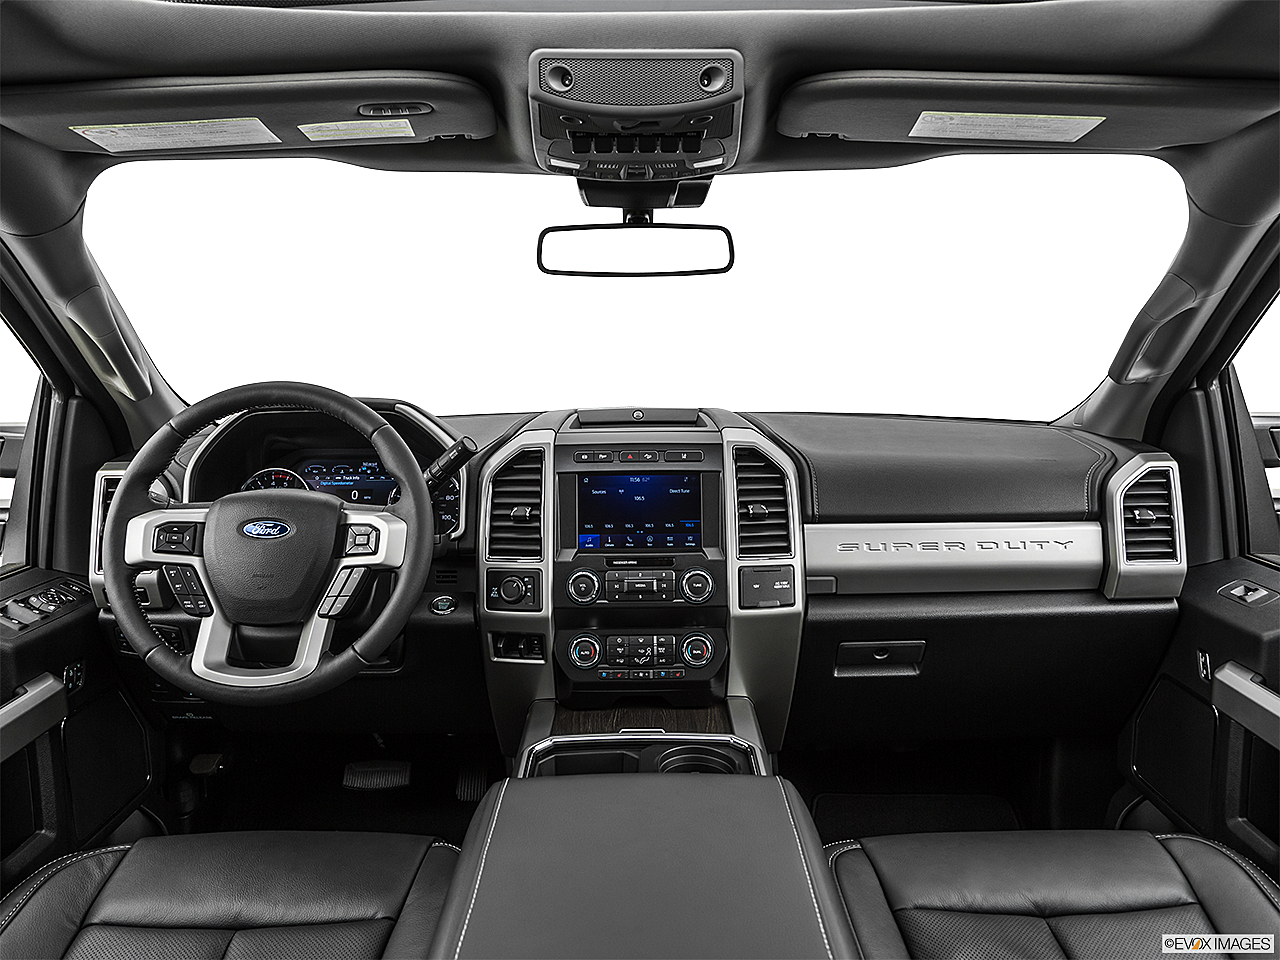 2020 Ford F-250 SD Lariat, centered wide dash shot